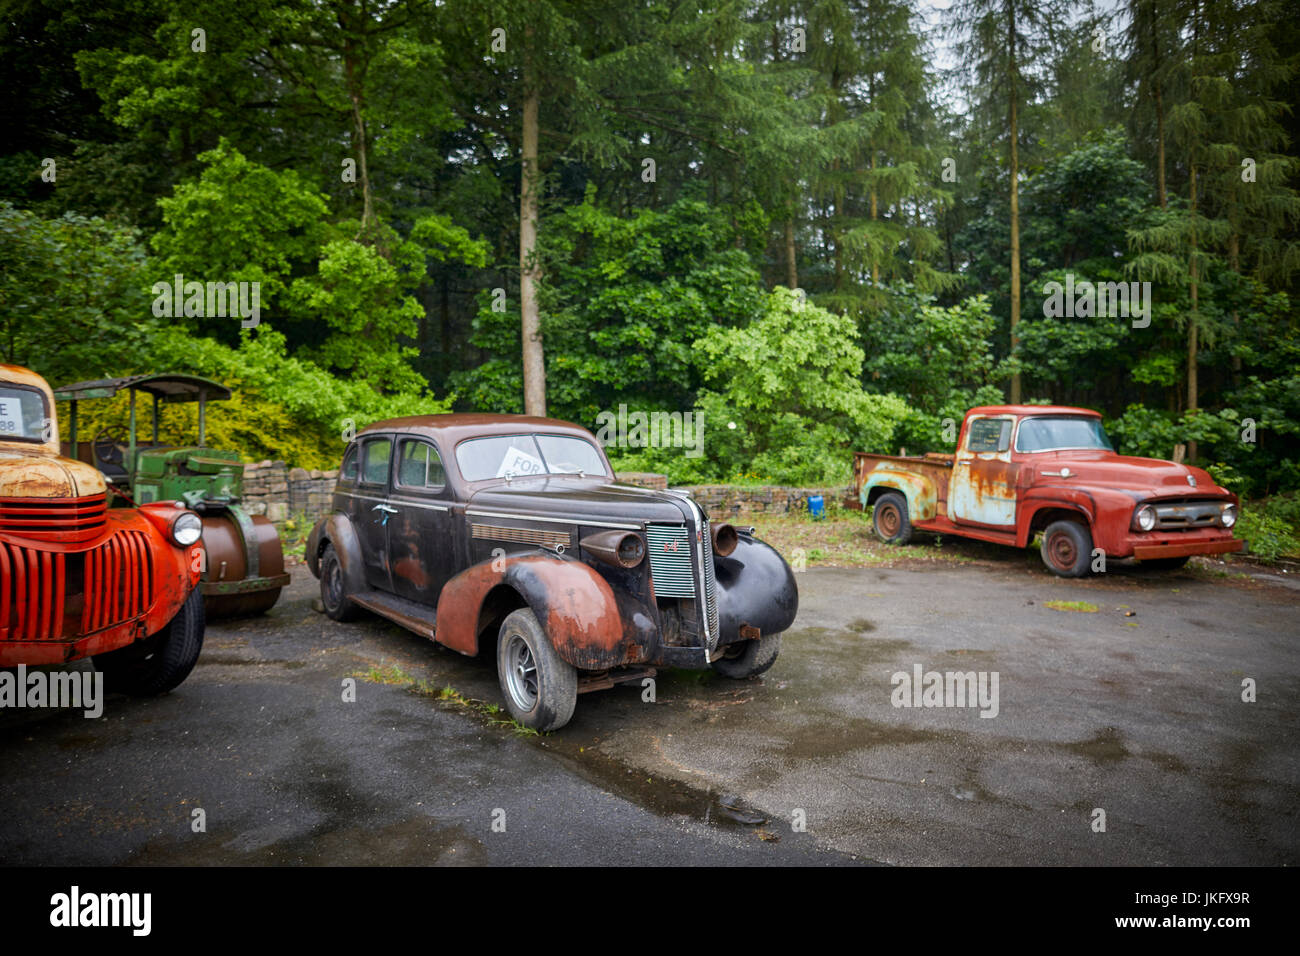 Great Cars That Need Restoration For Sale Ideas - Classic Cars Ideas ...